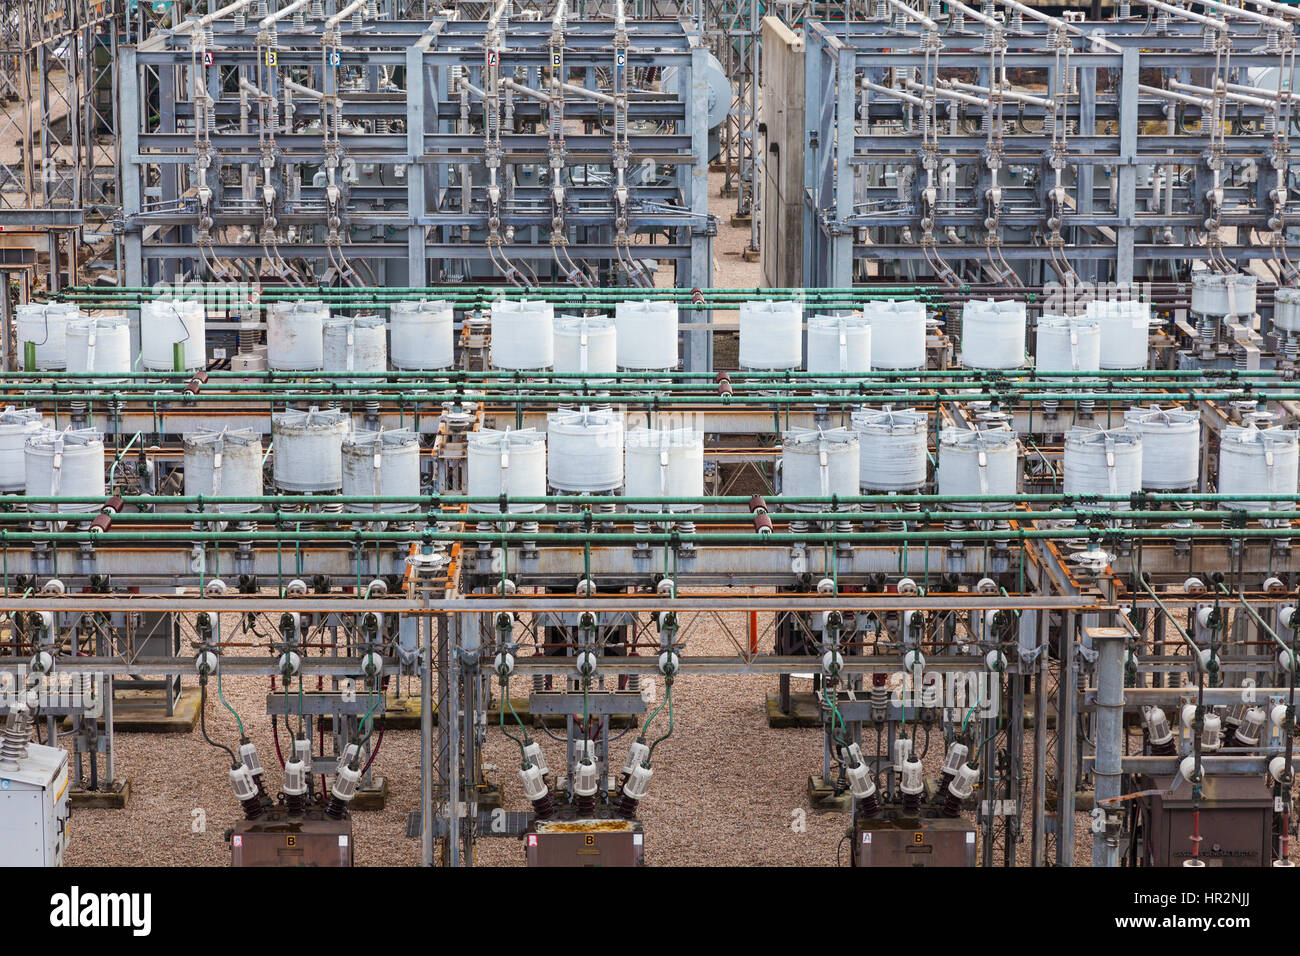 Electrical sub-station abstract - Stock Image